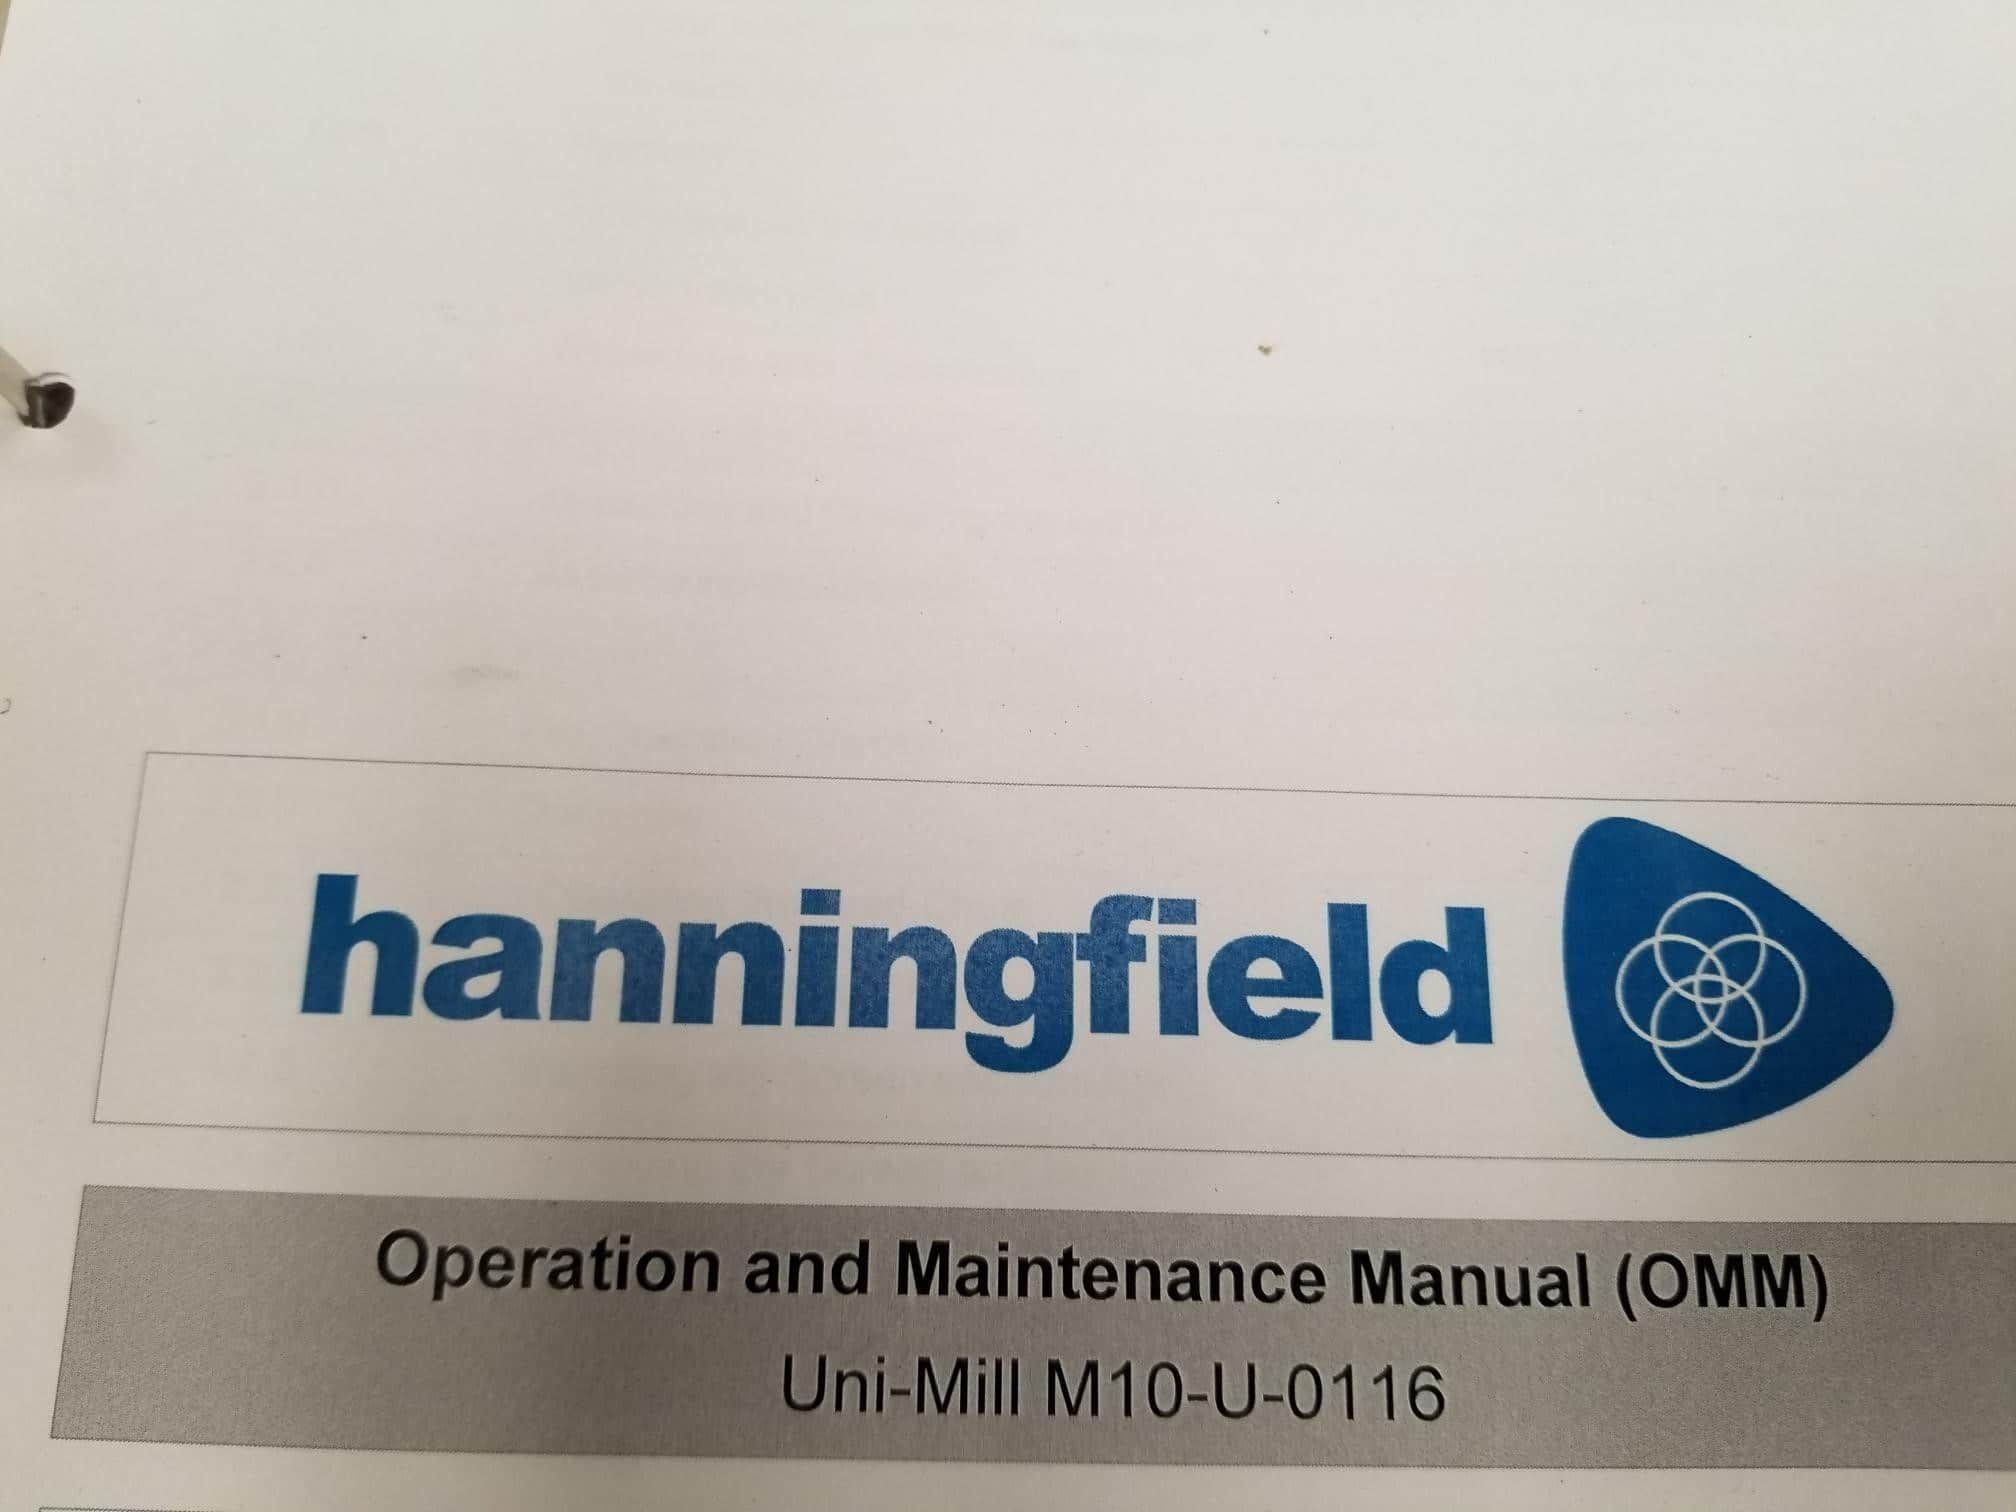 Hanningfield Conical Mill Uni-Mill M10